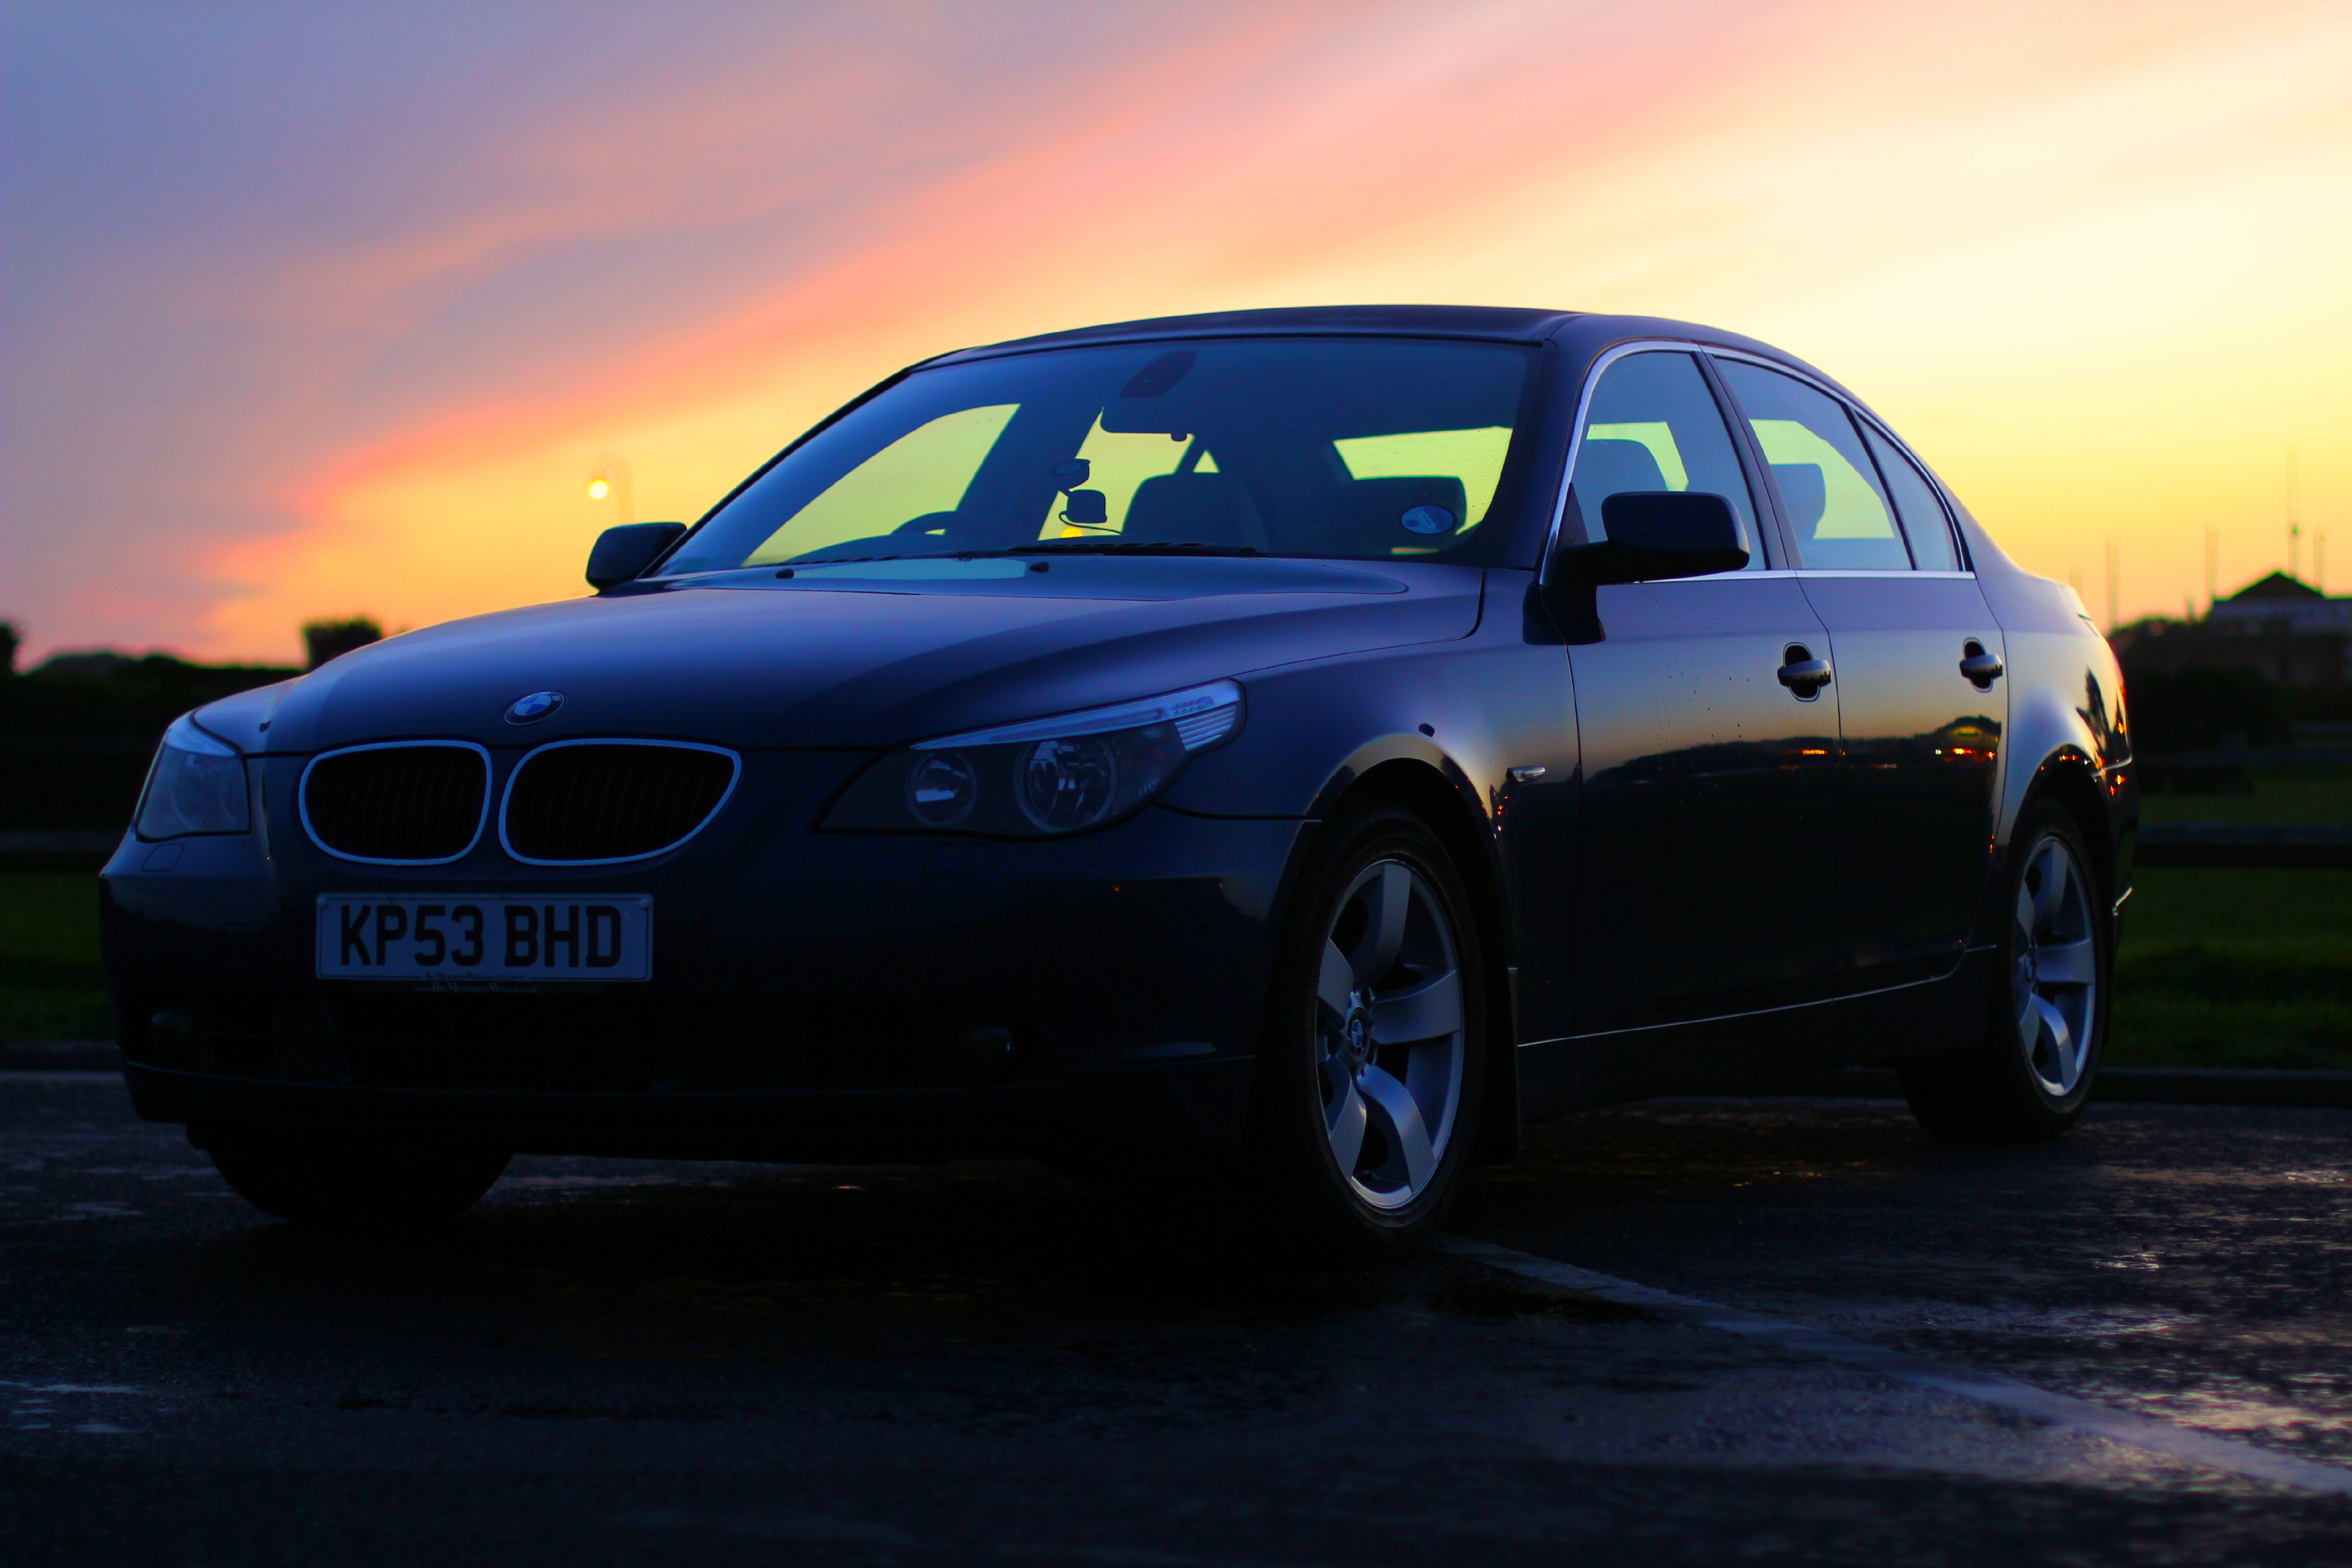 BMW 530 | Flickr - Photo Sharing!